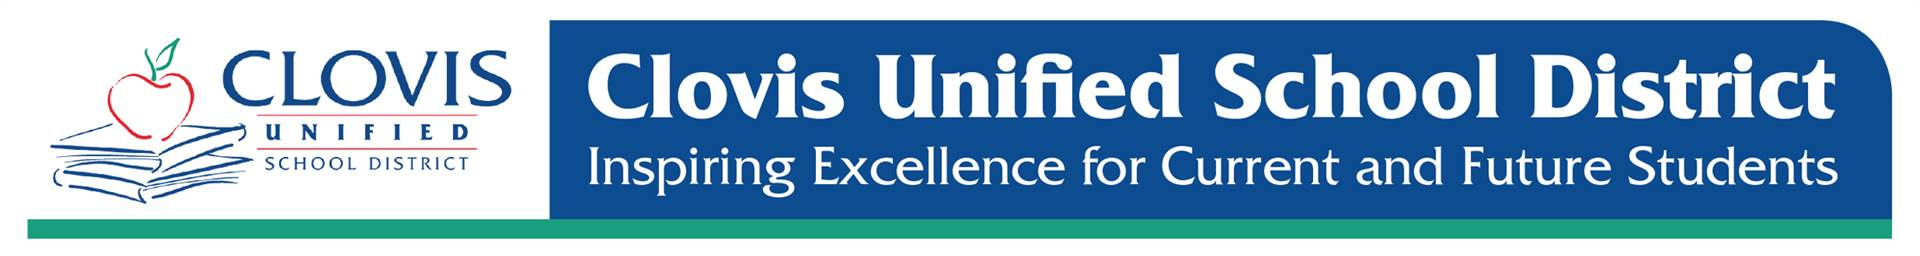 Clovis Unified School District Inspiring Excellence for Current and Future Students